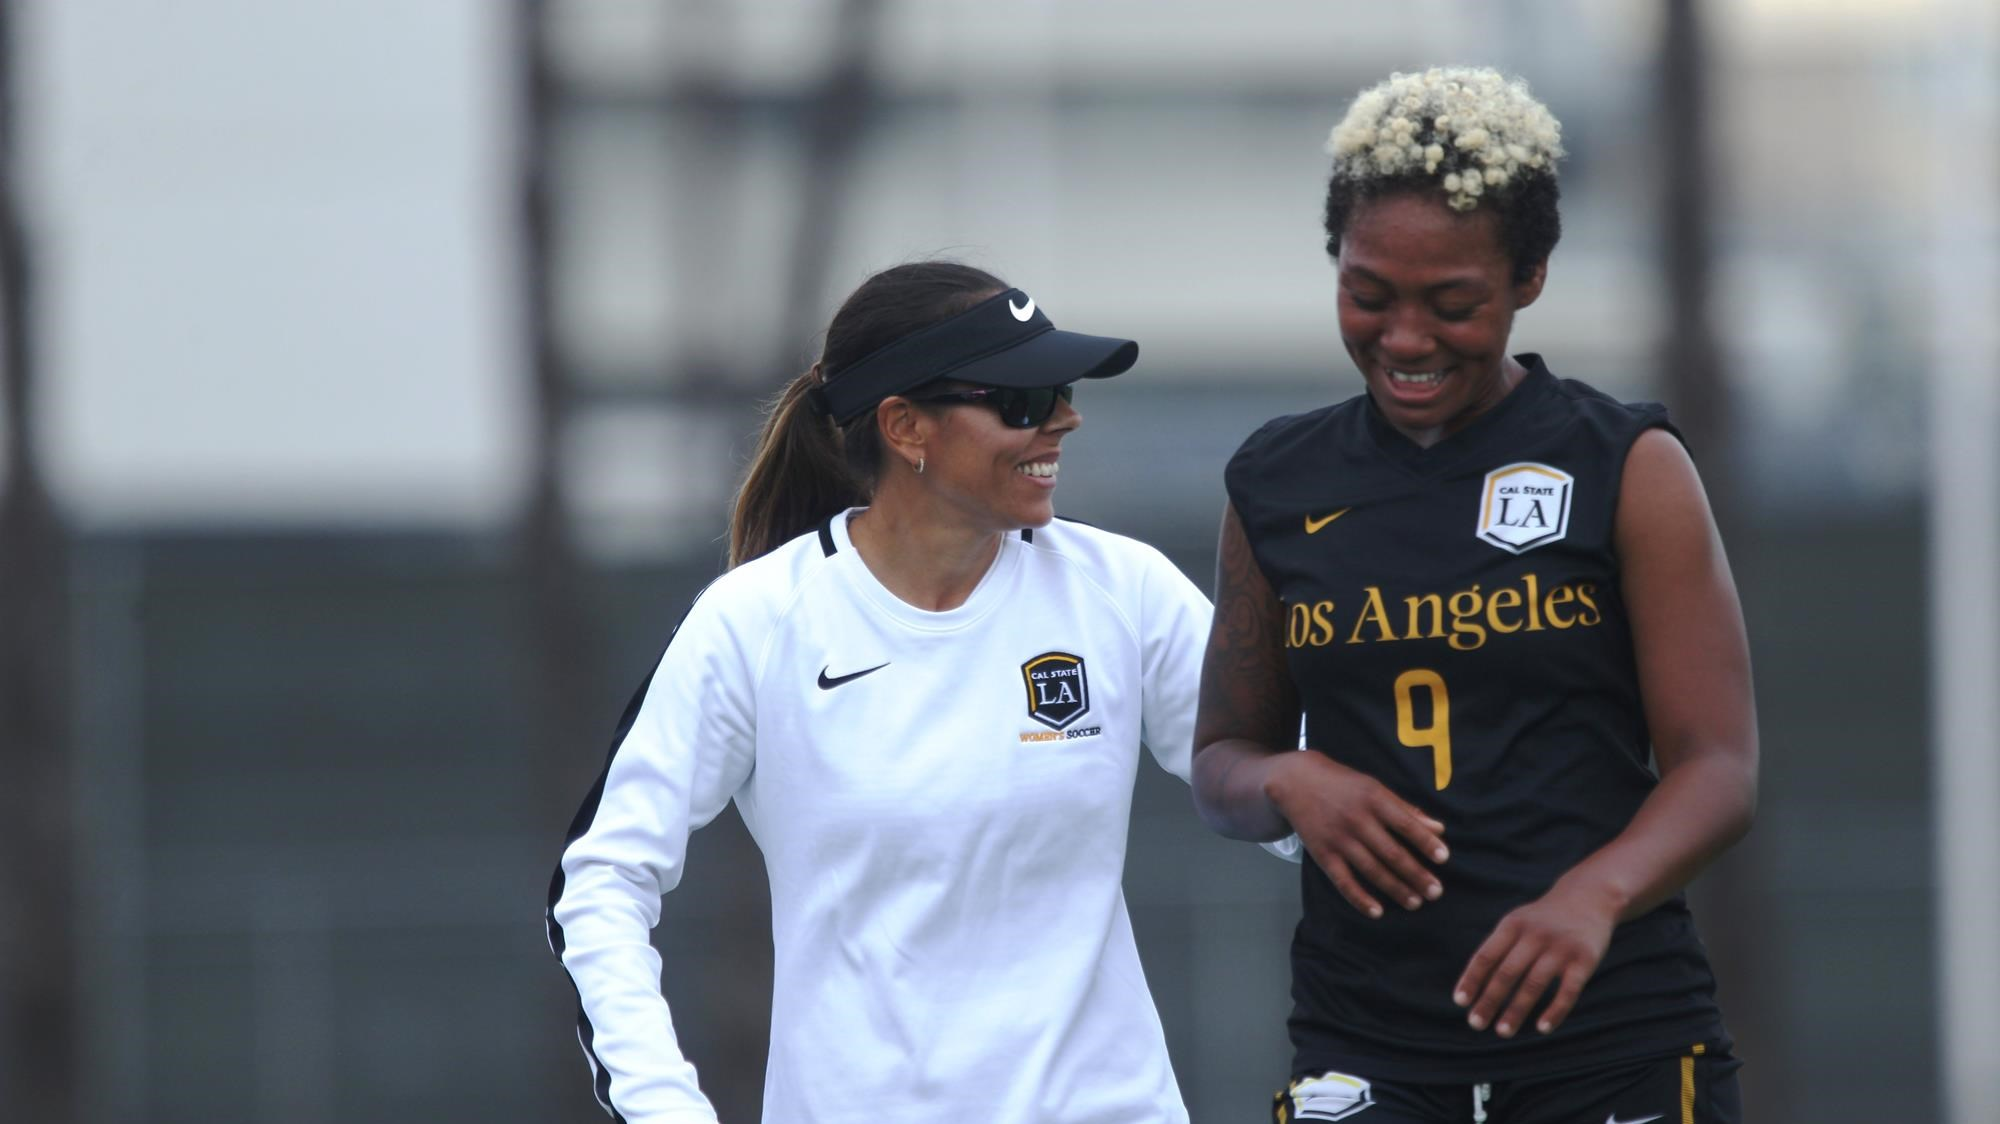 Isabelle Harvey Resigns To Return Home To Canada Cal State La Athletics